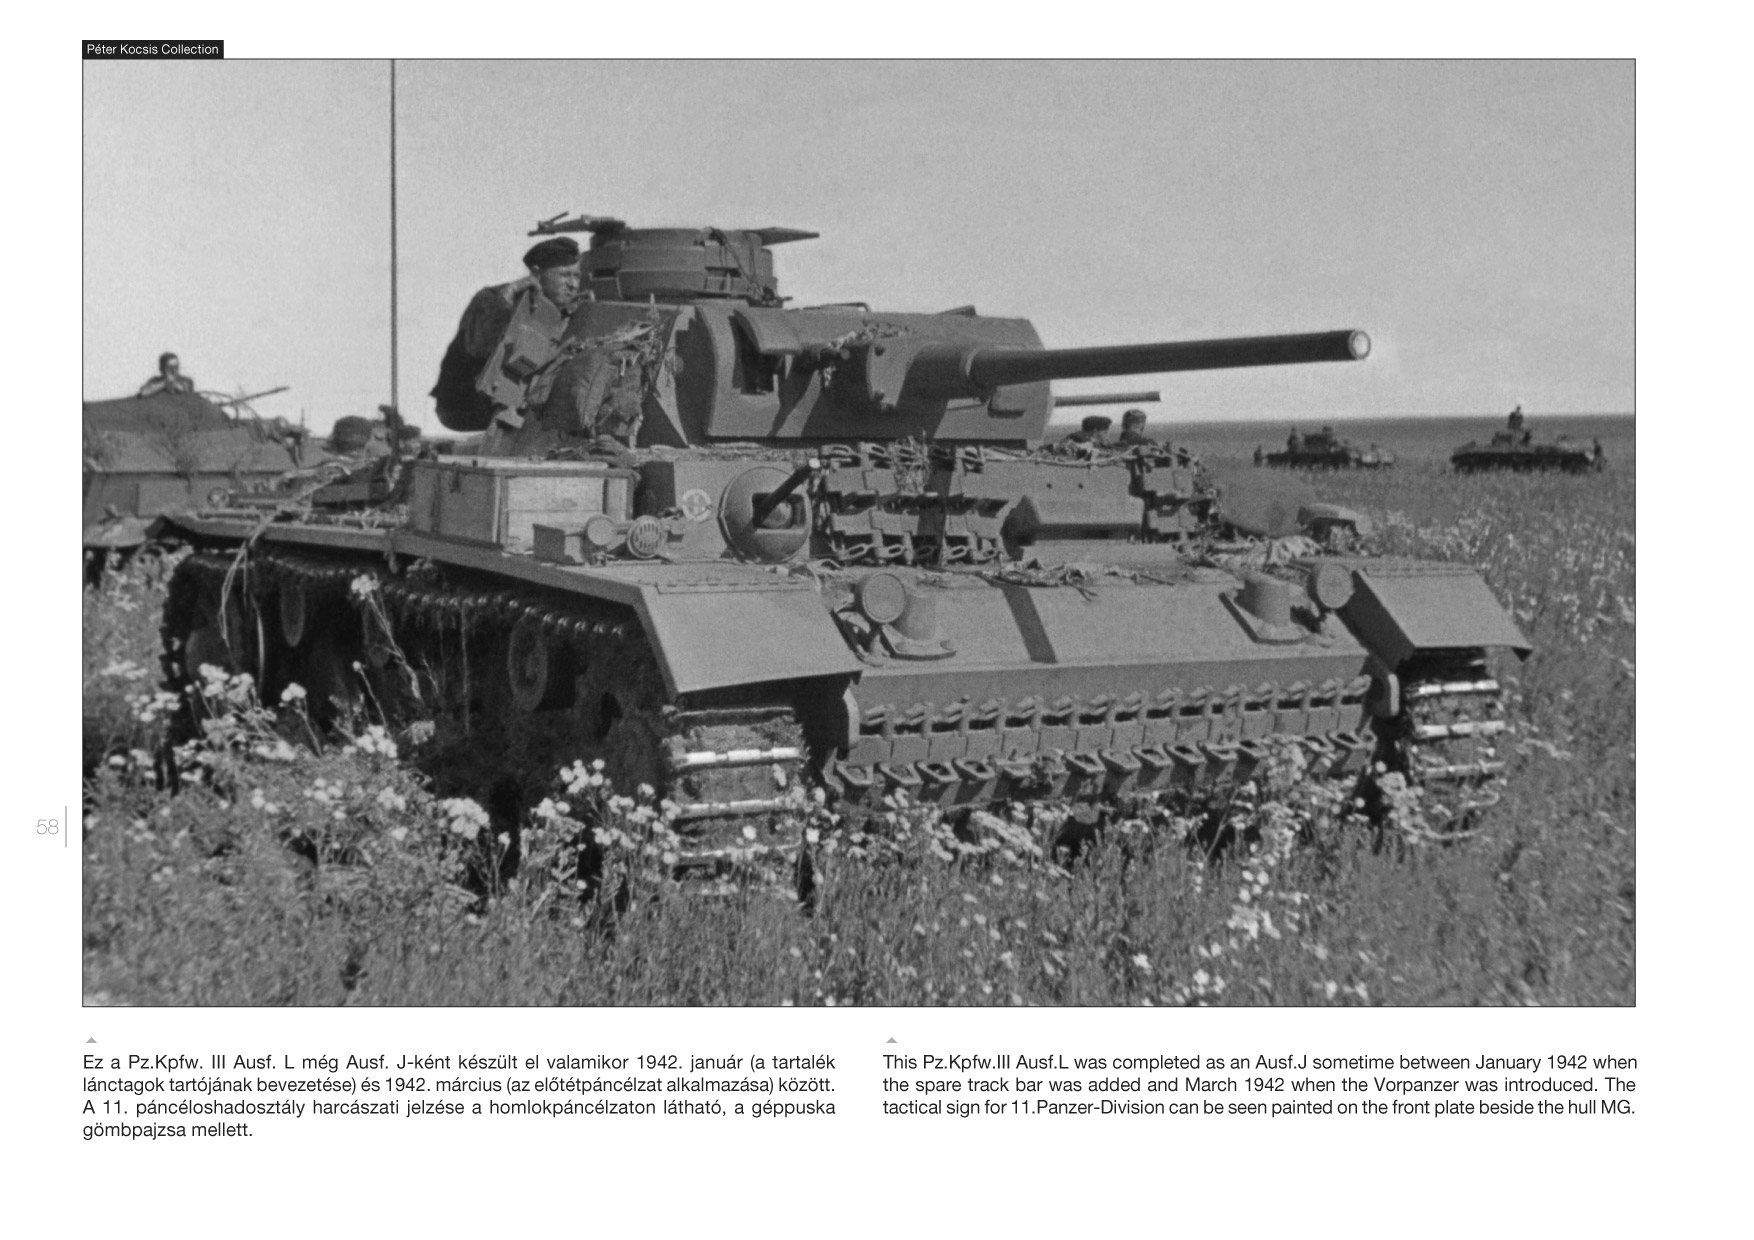 WW2 photobook series Vol  18 - Panzer III on the battlefield 2